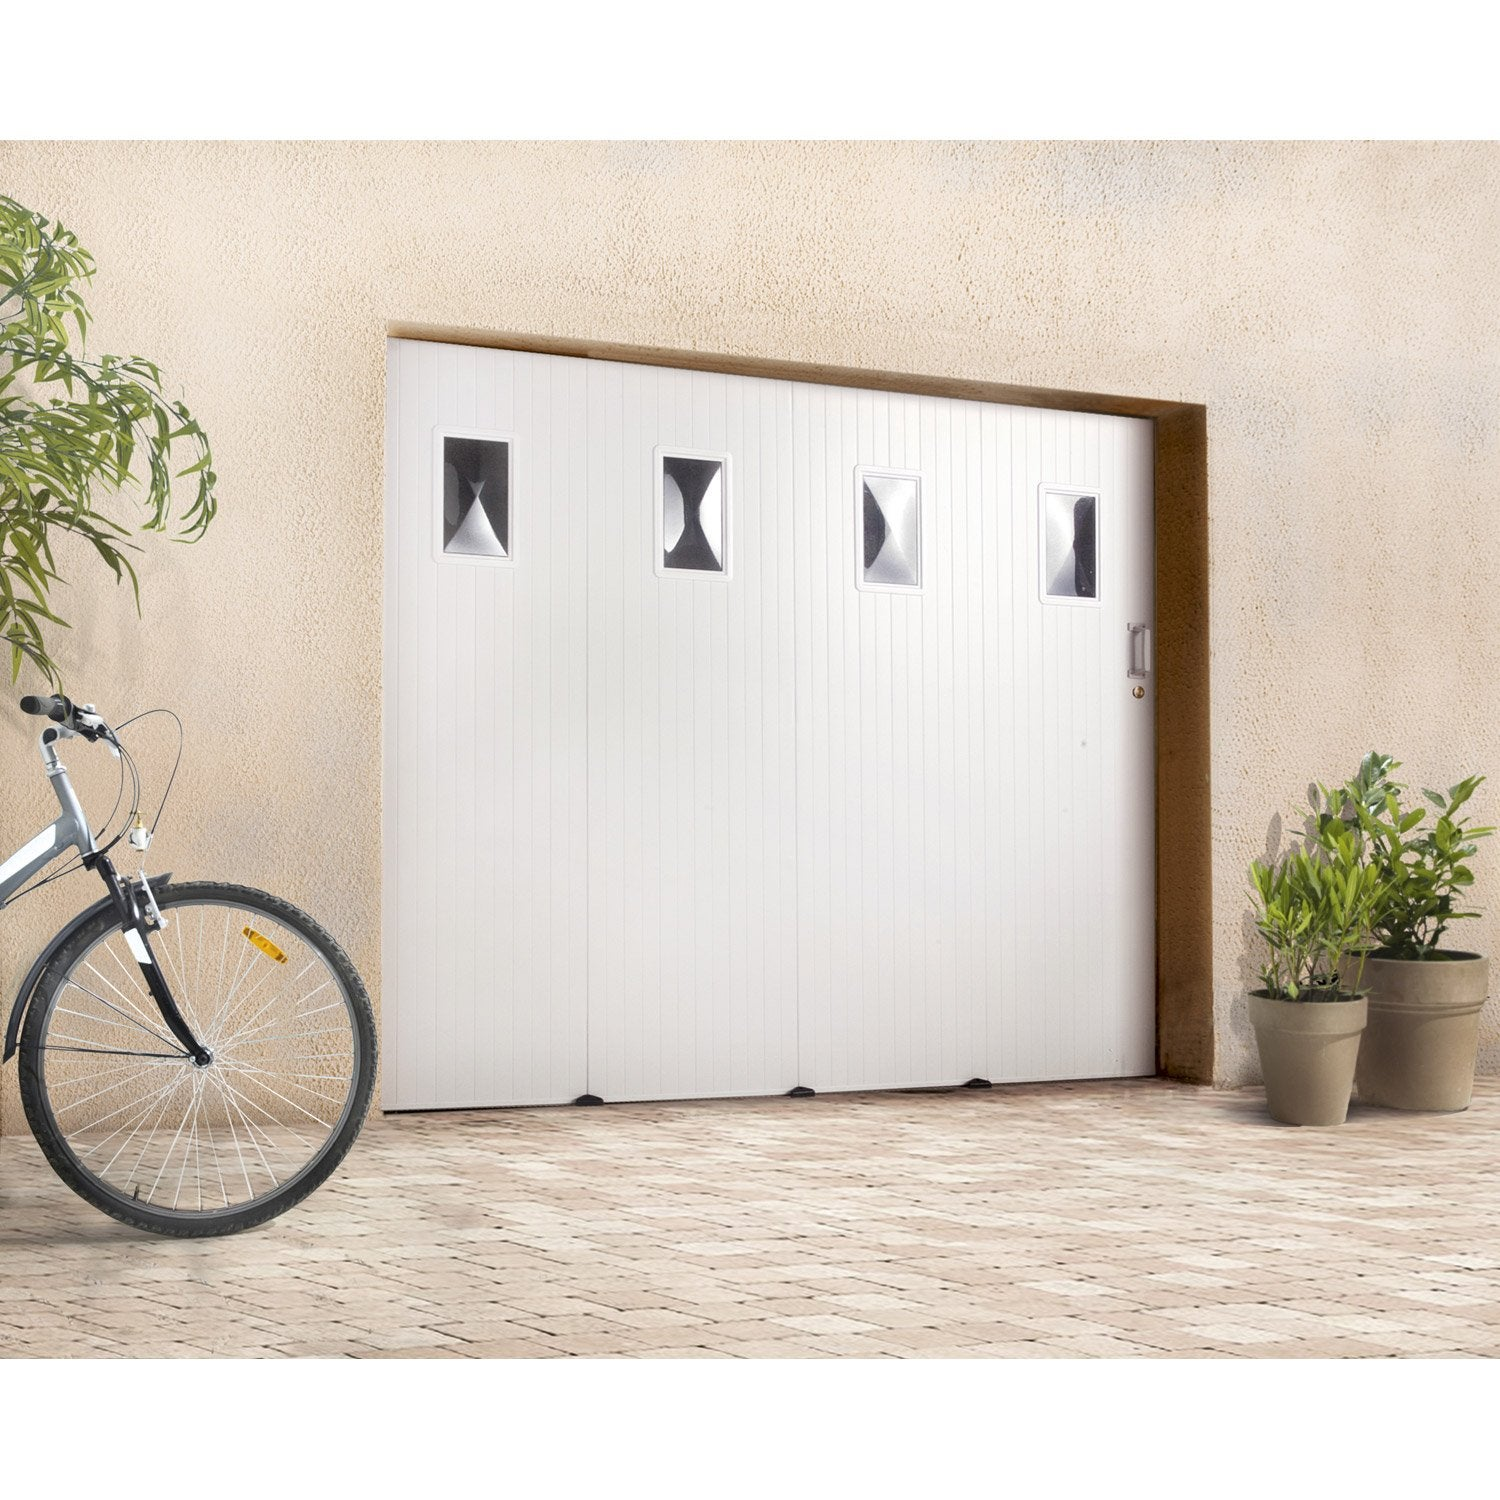 Porte de garage coulissante avec hublot primo x l for Hublot porte garage sectionnelle